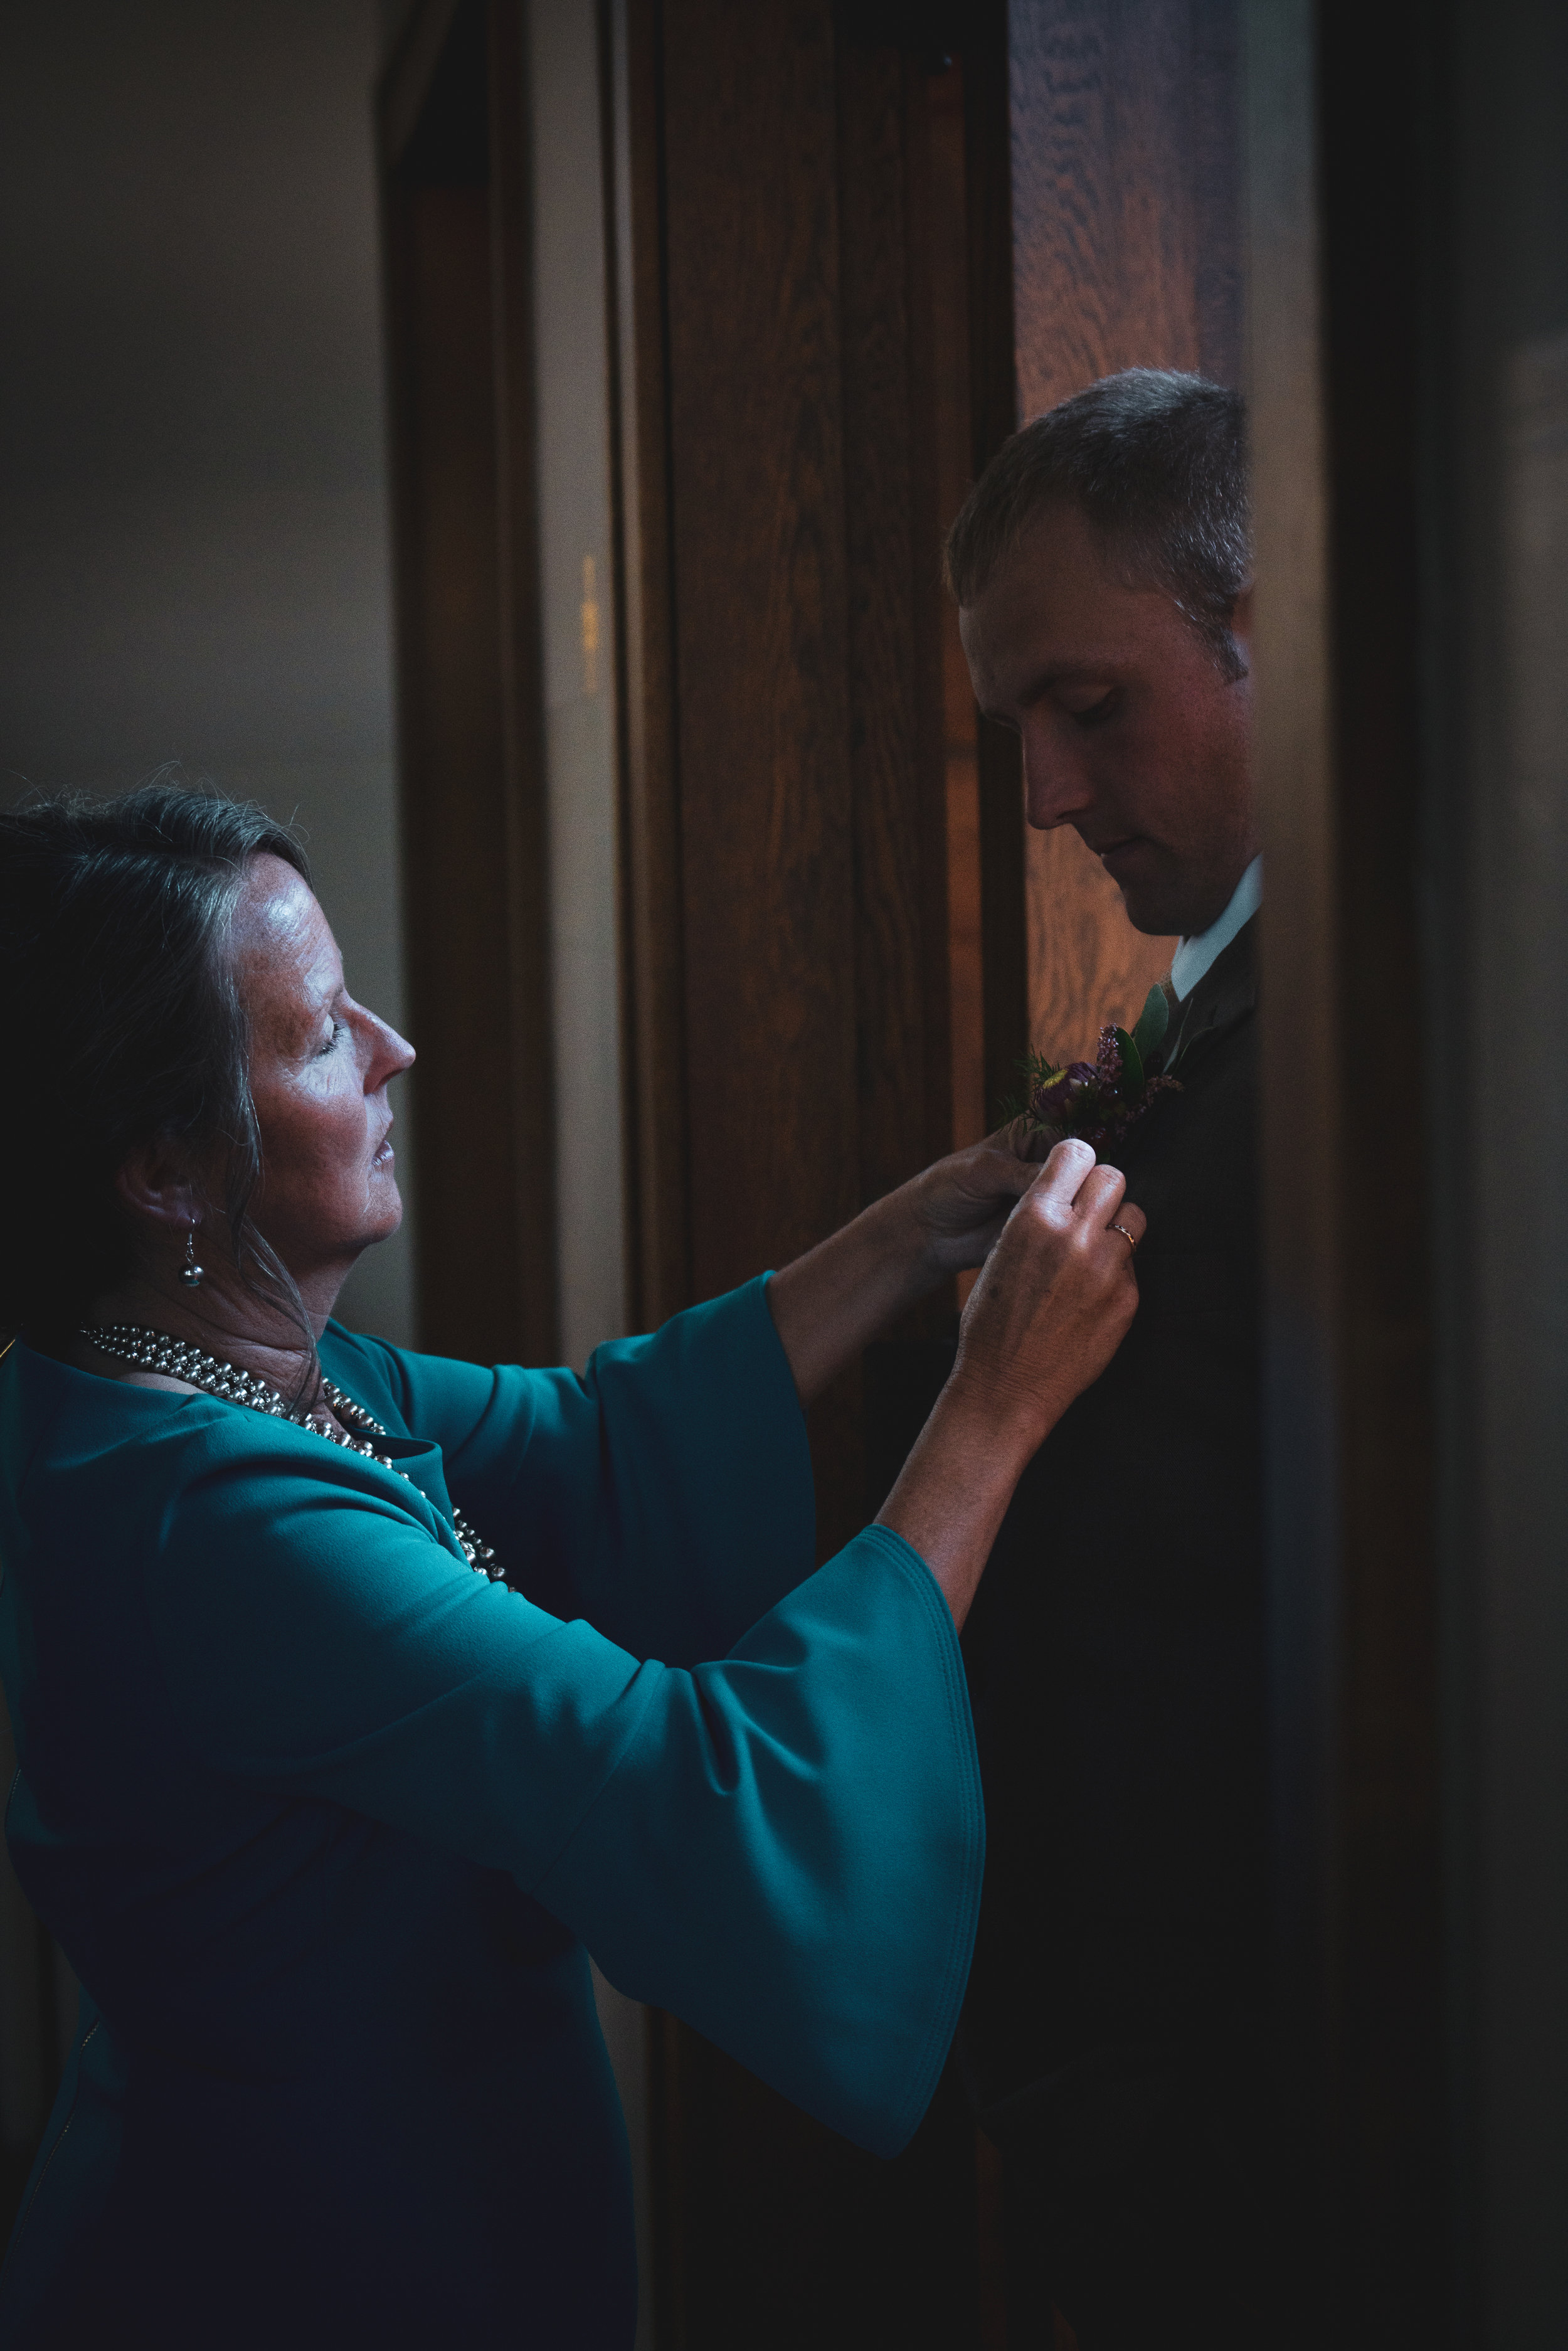 The Groom and his mother photographed before the wedding in a Montana church